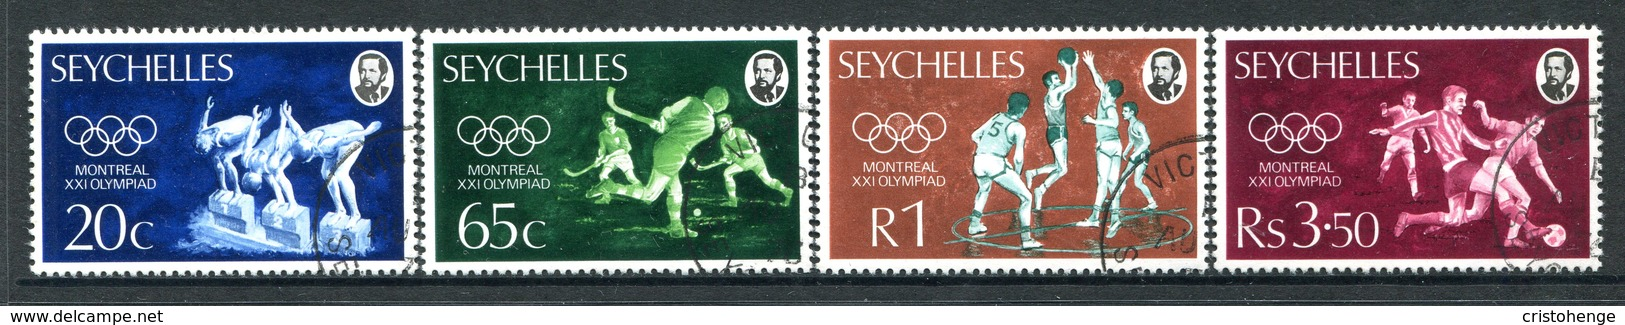 Seychelles 1976 Olympic Games, Montreal Set Used (SG 365-368) - Seychelles (1976-...)